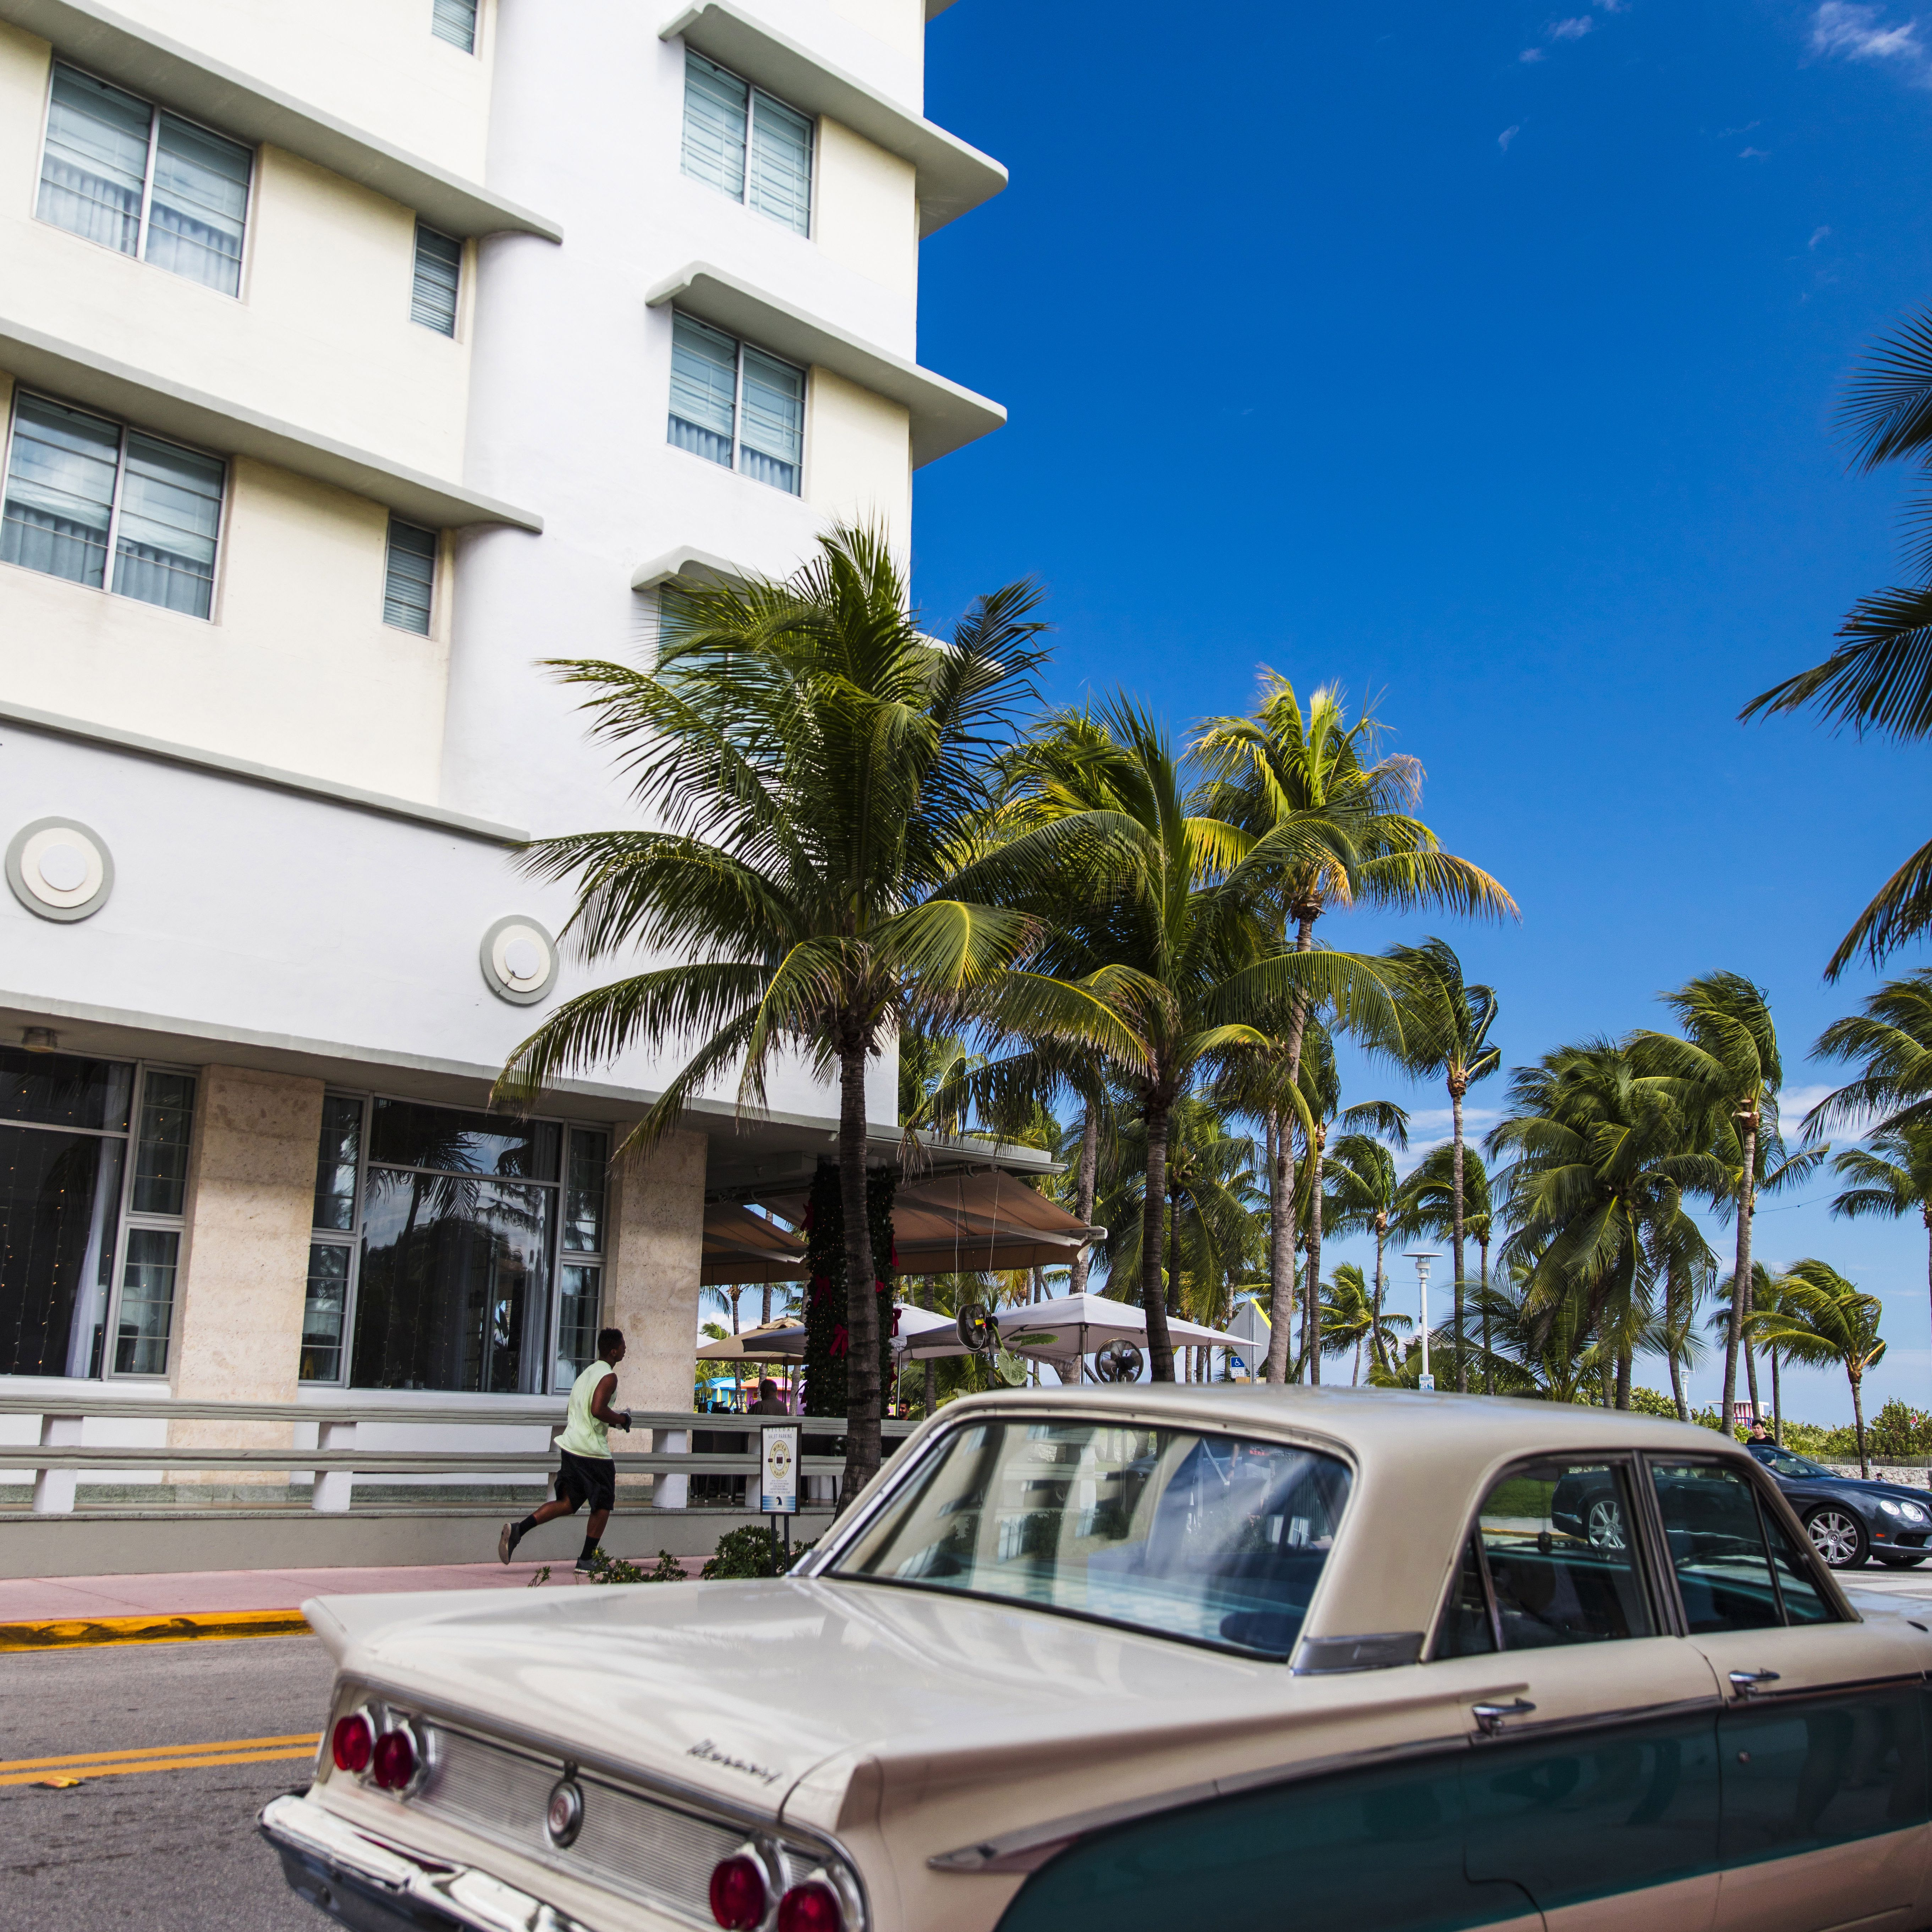 South beach architecture and a classic car